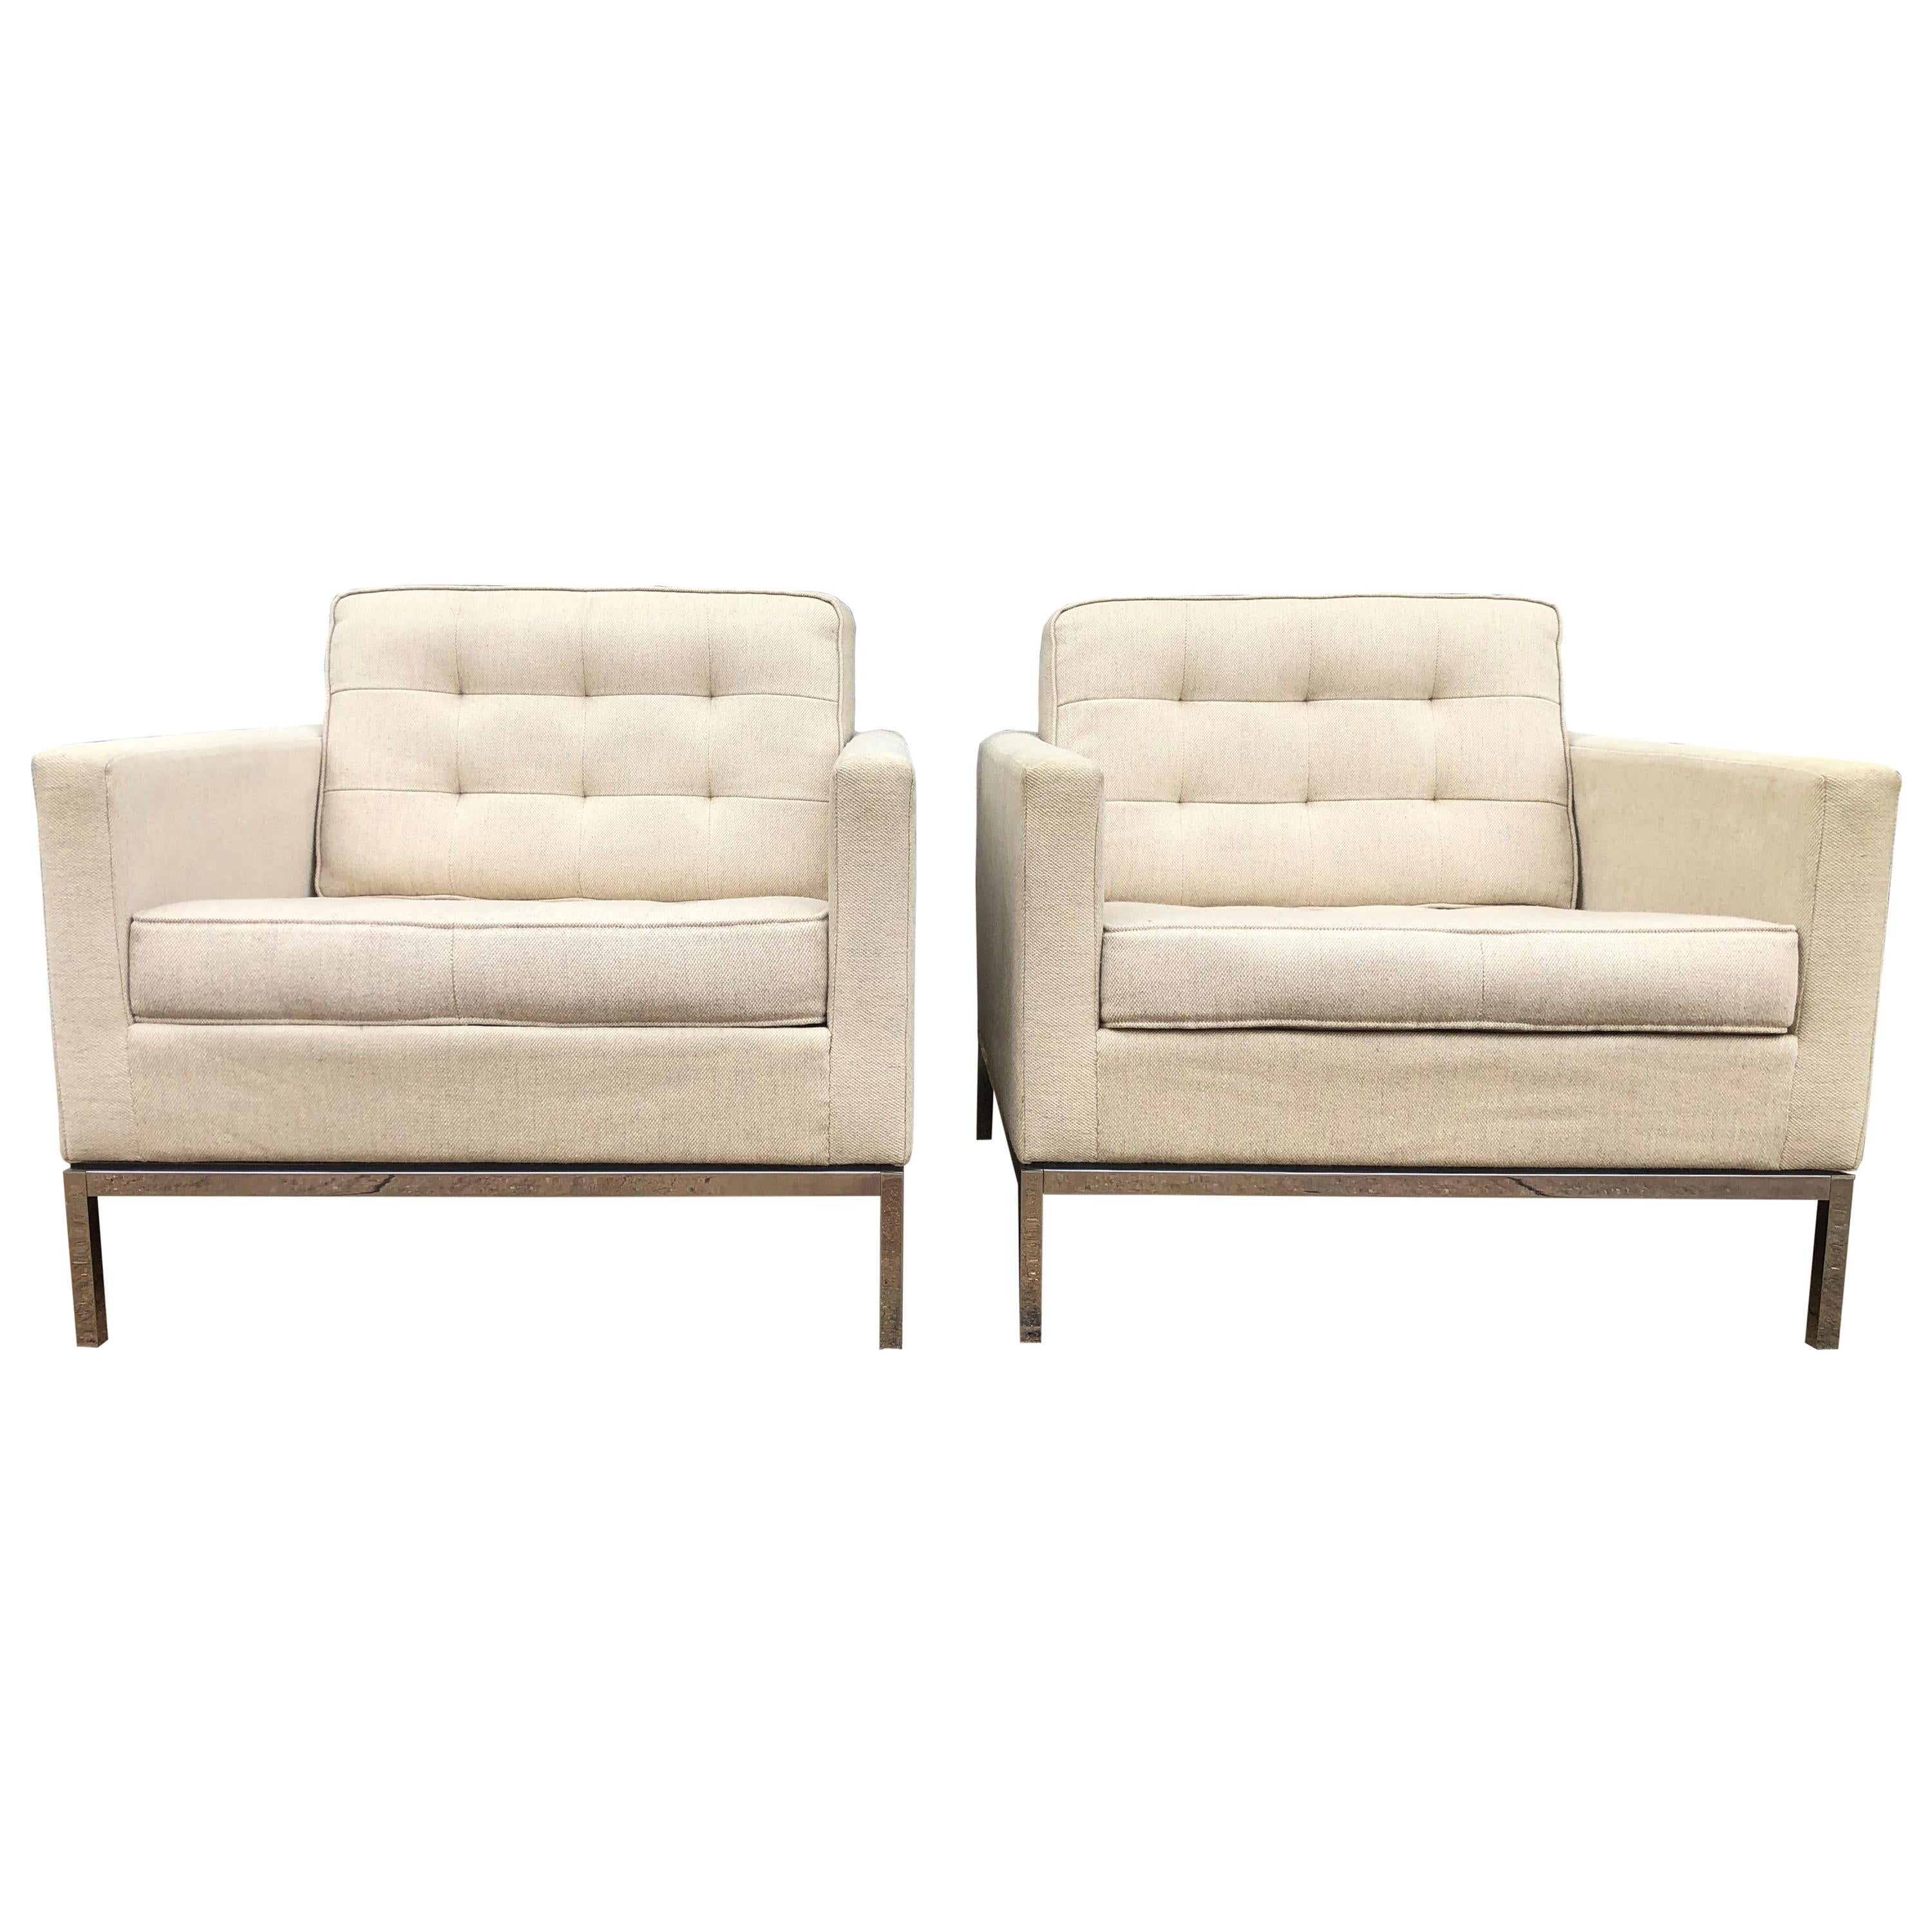 Florence Knoll Furniture: Sofas, Credenzas, Tables U0026 More ...